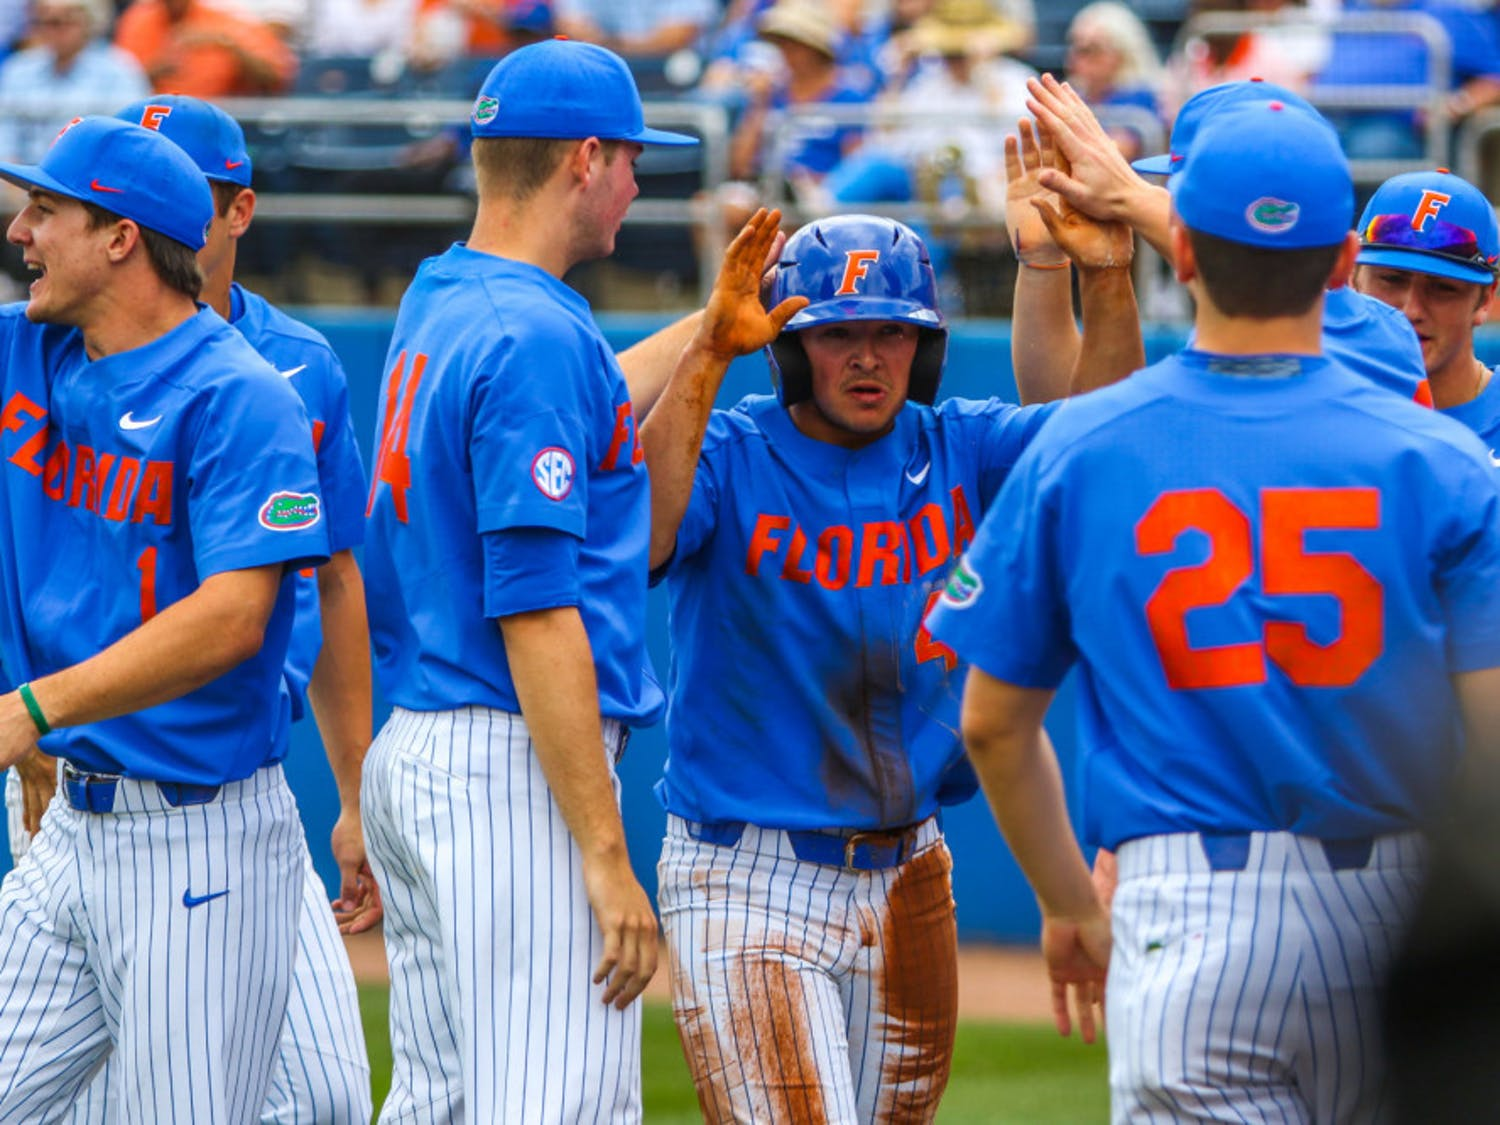 UF rallied from a five-run deficit to defeat Stetson 10-7